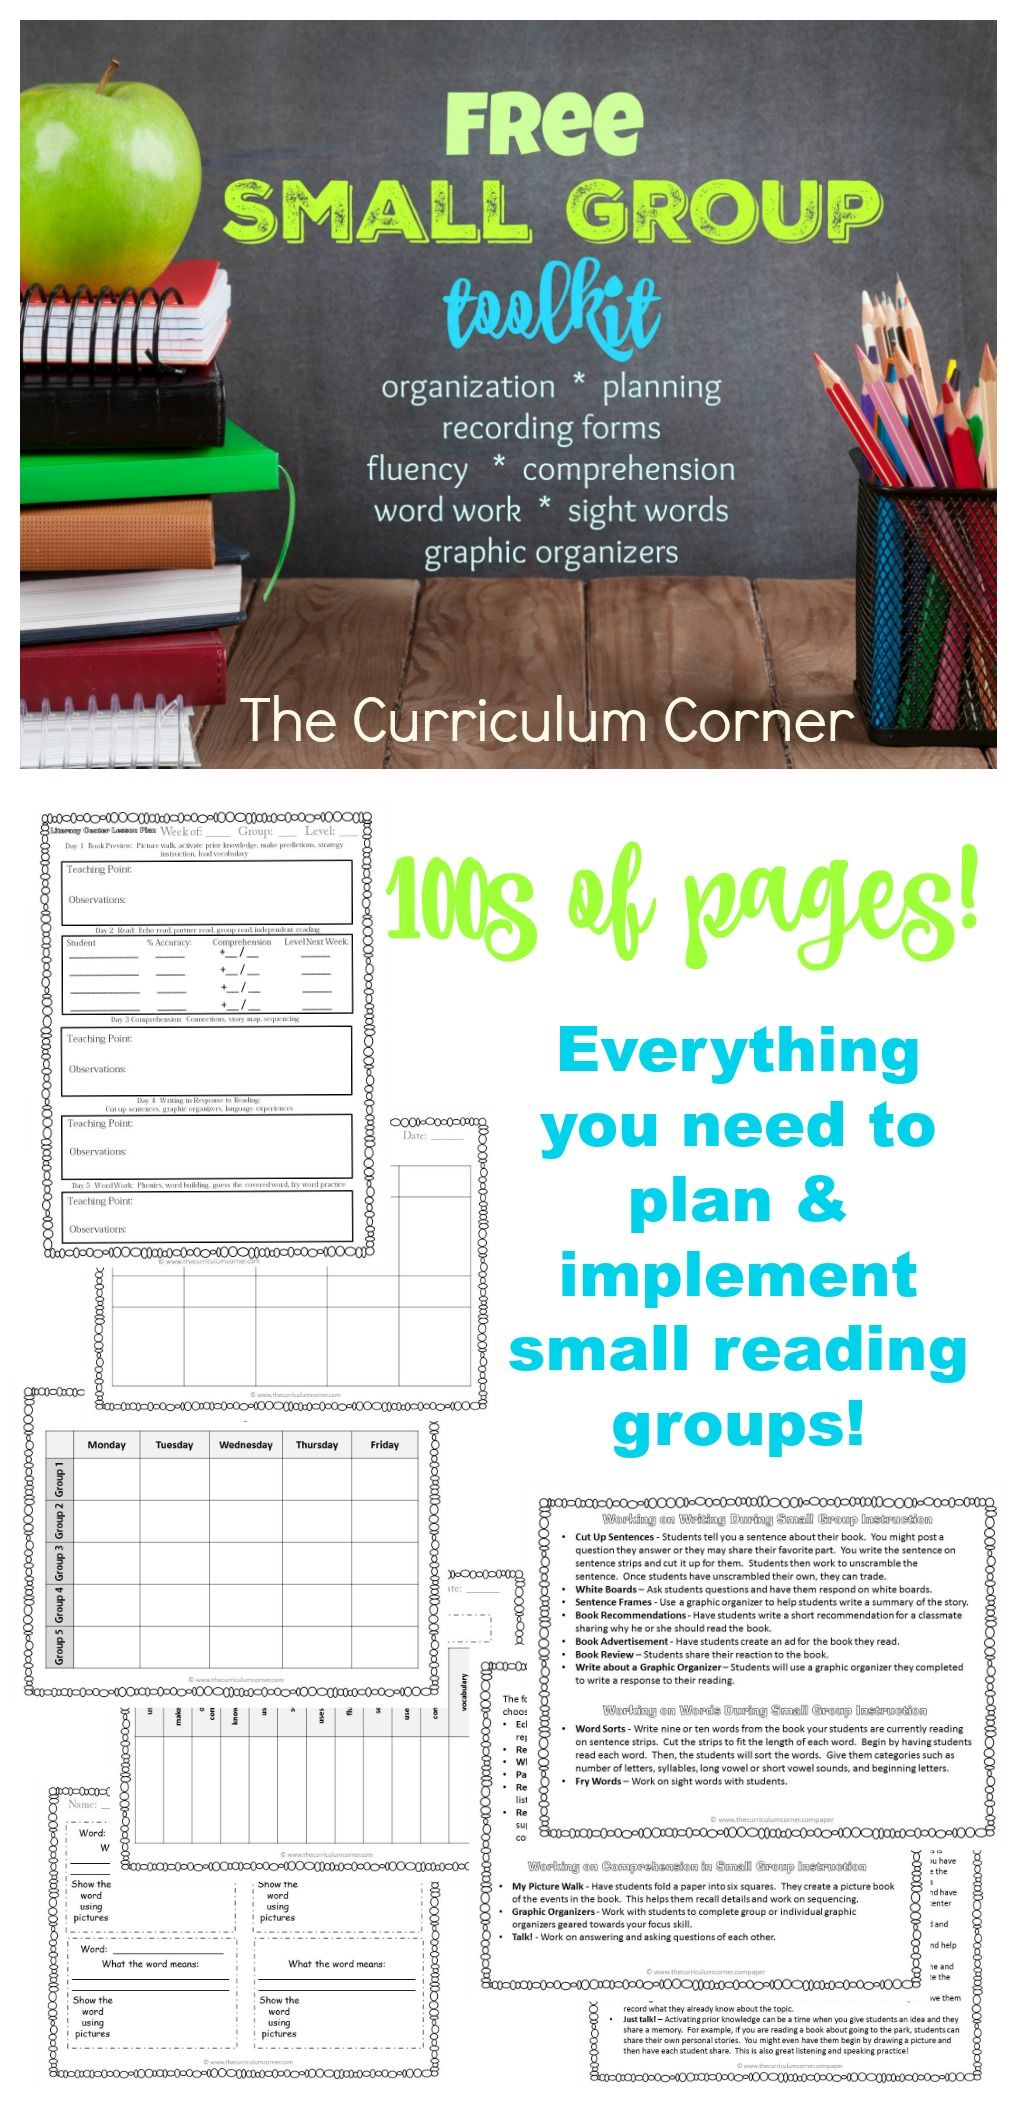 Small Group Toolkit for Reading | Pinterest | Word work, Graphic ...